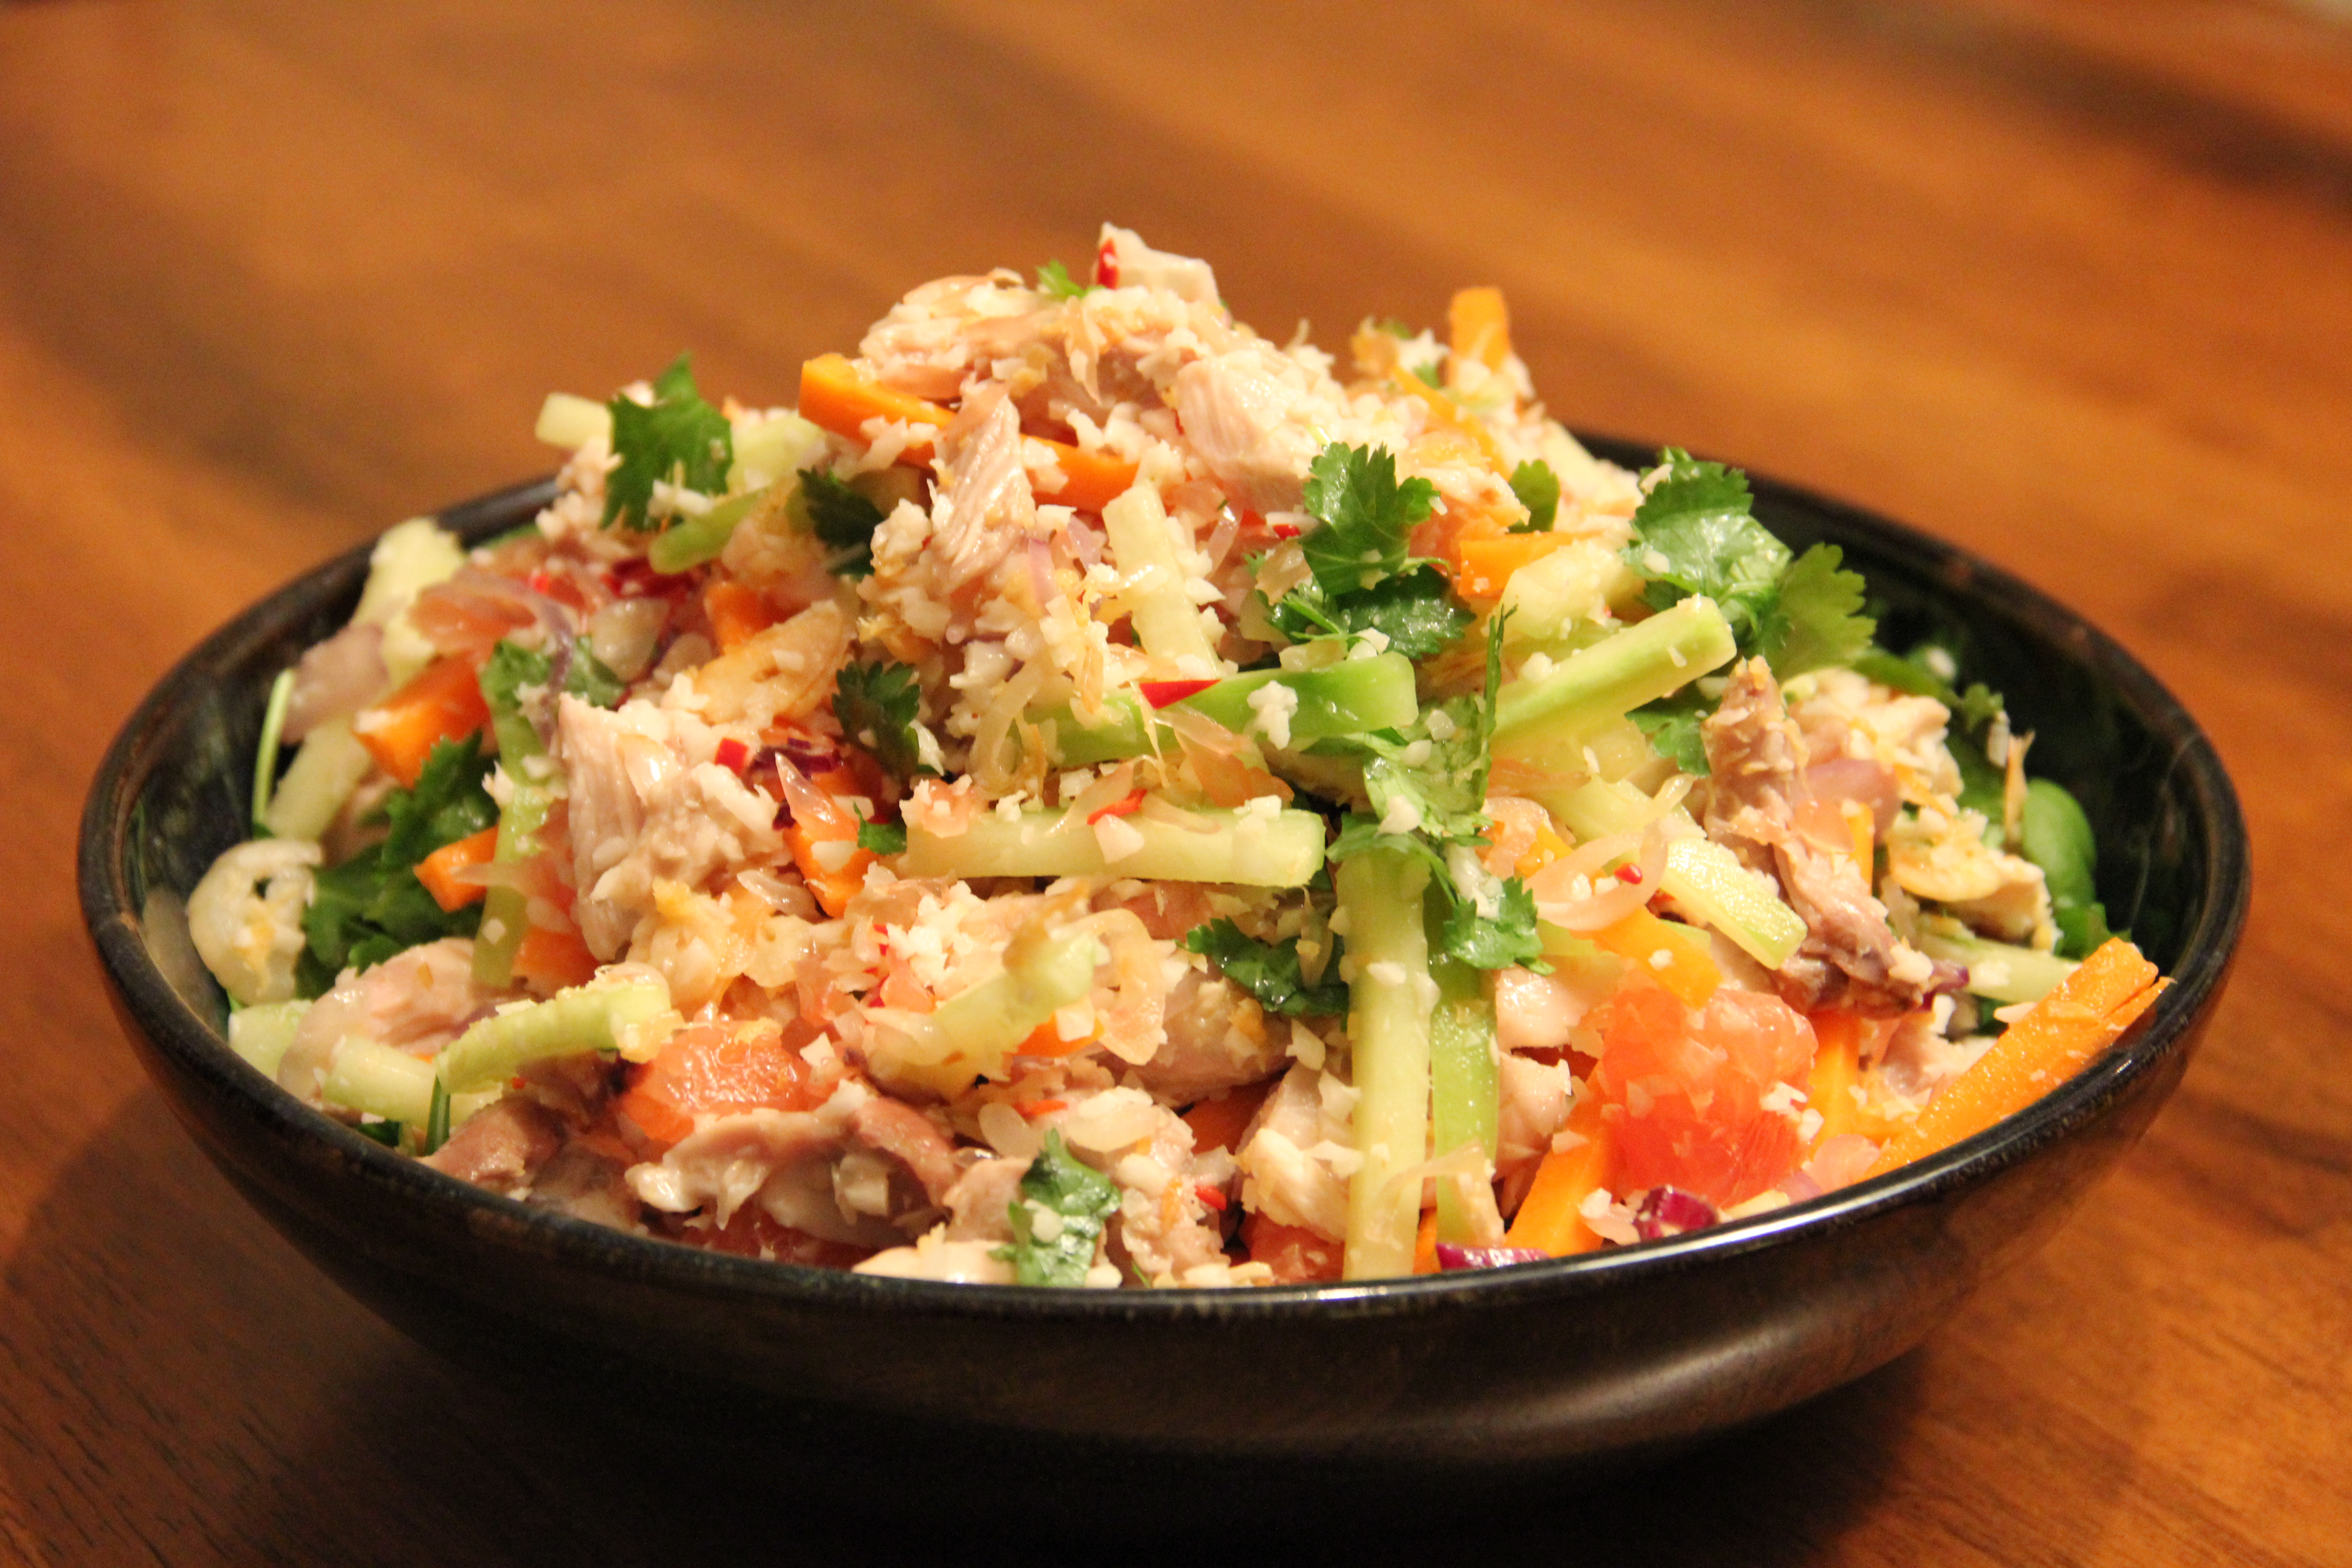 Yam som-o, or pomelo and coconut spicy salad with chicken